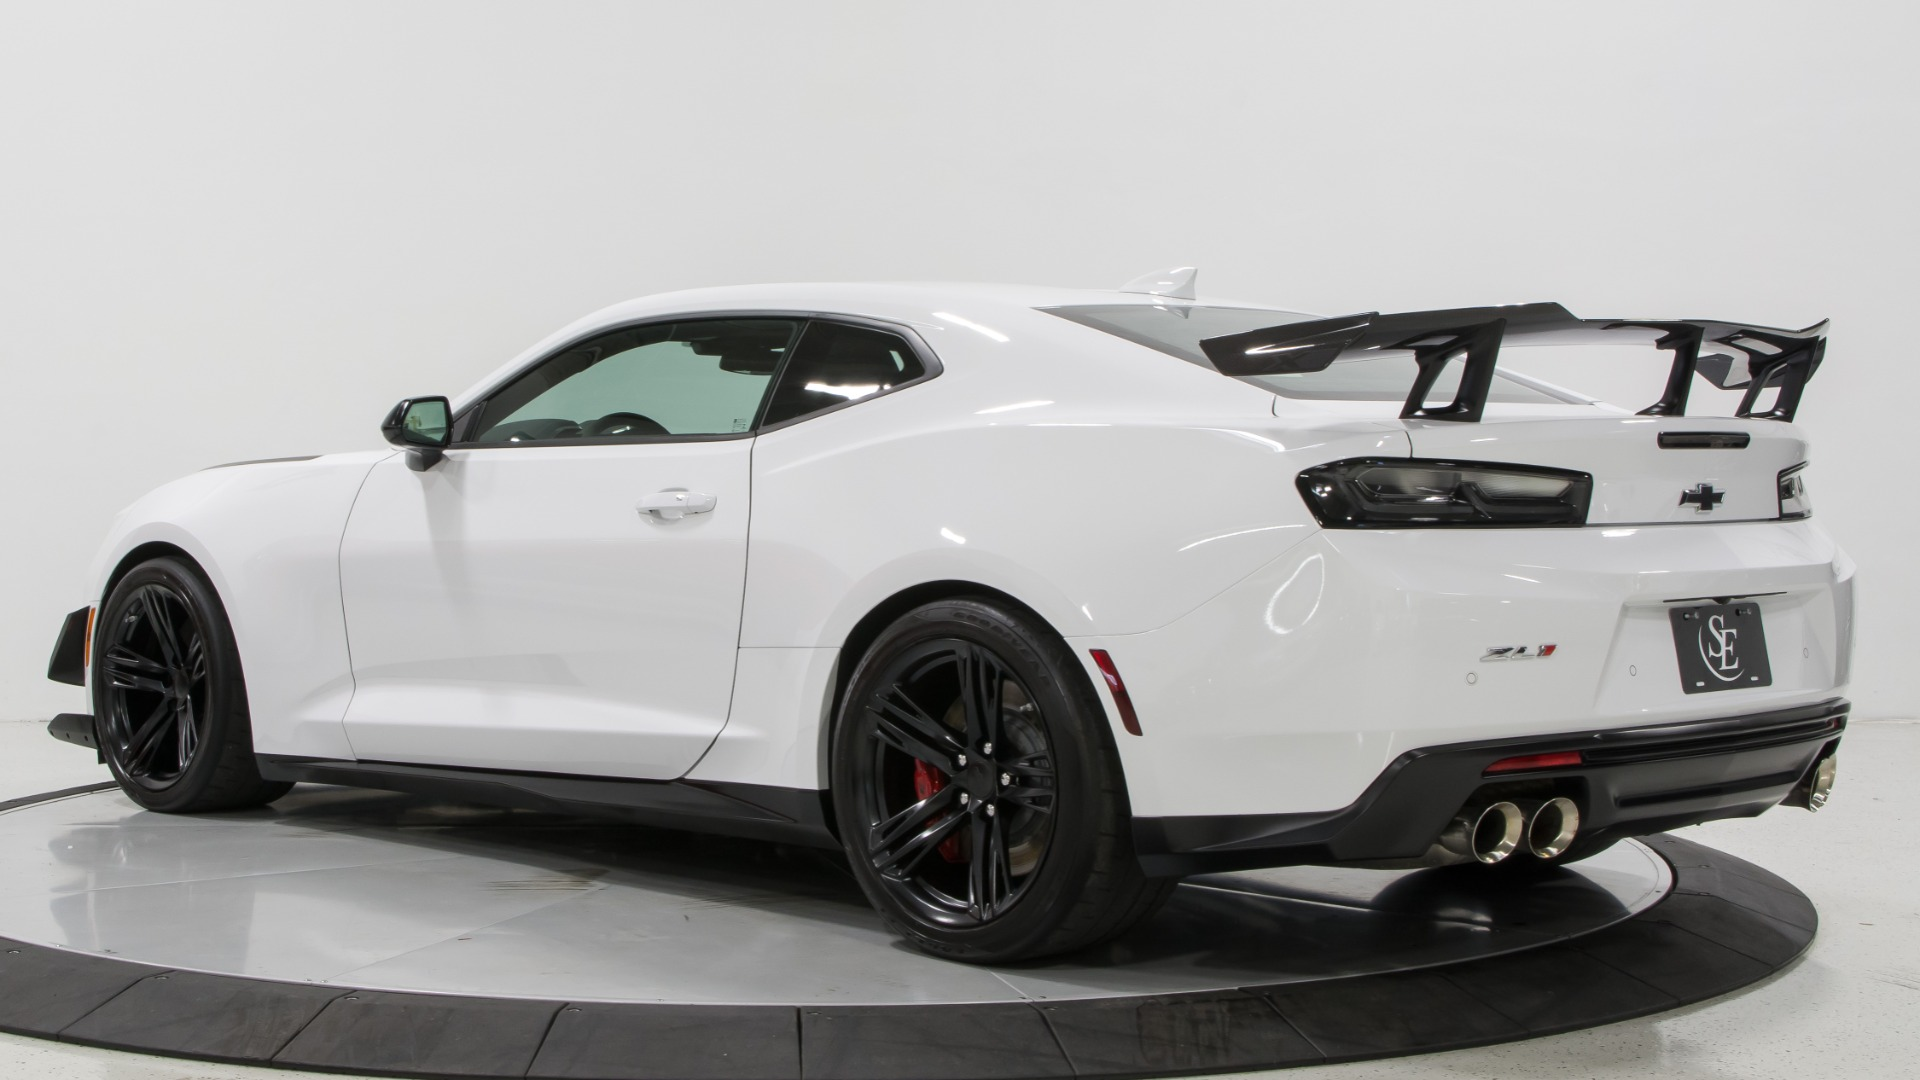 2018 Chevrolet Camaro ZL1 1LE Stock for sale near Pompano